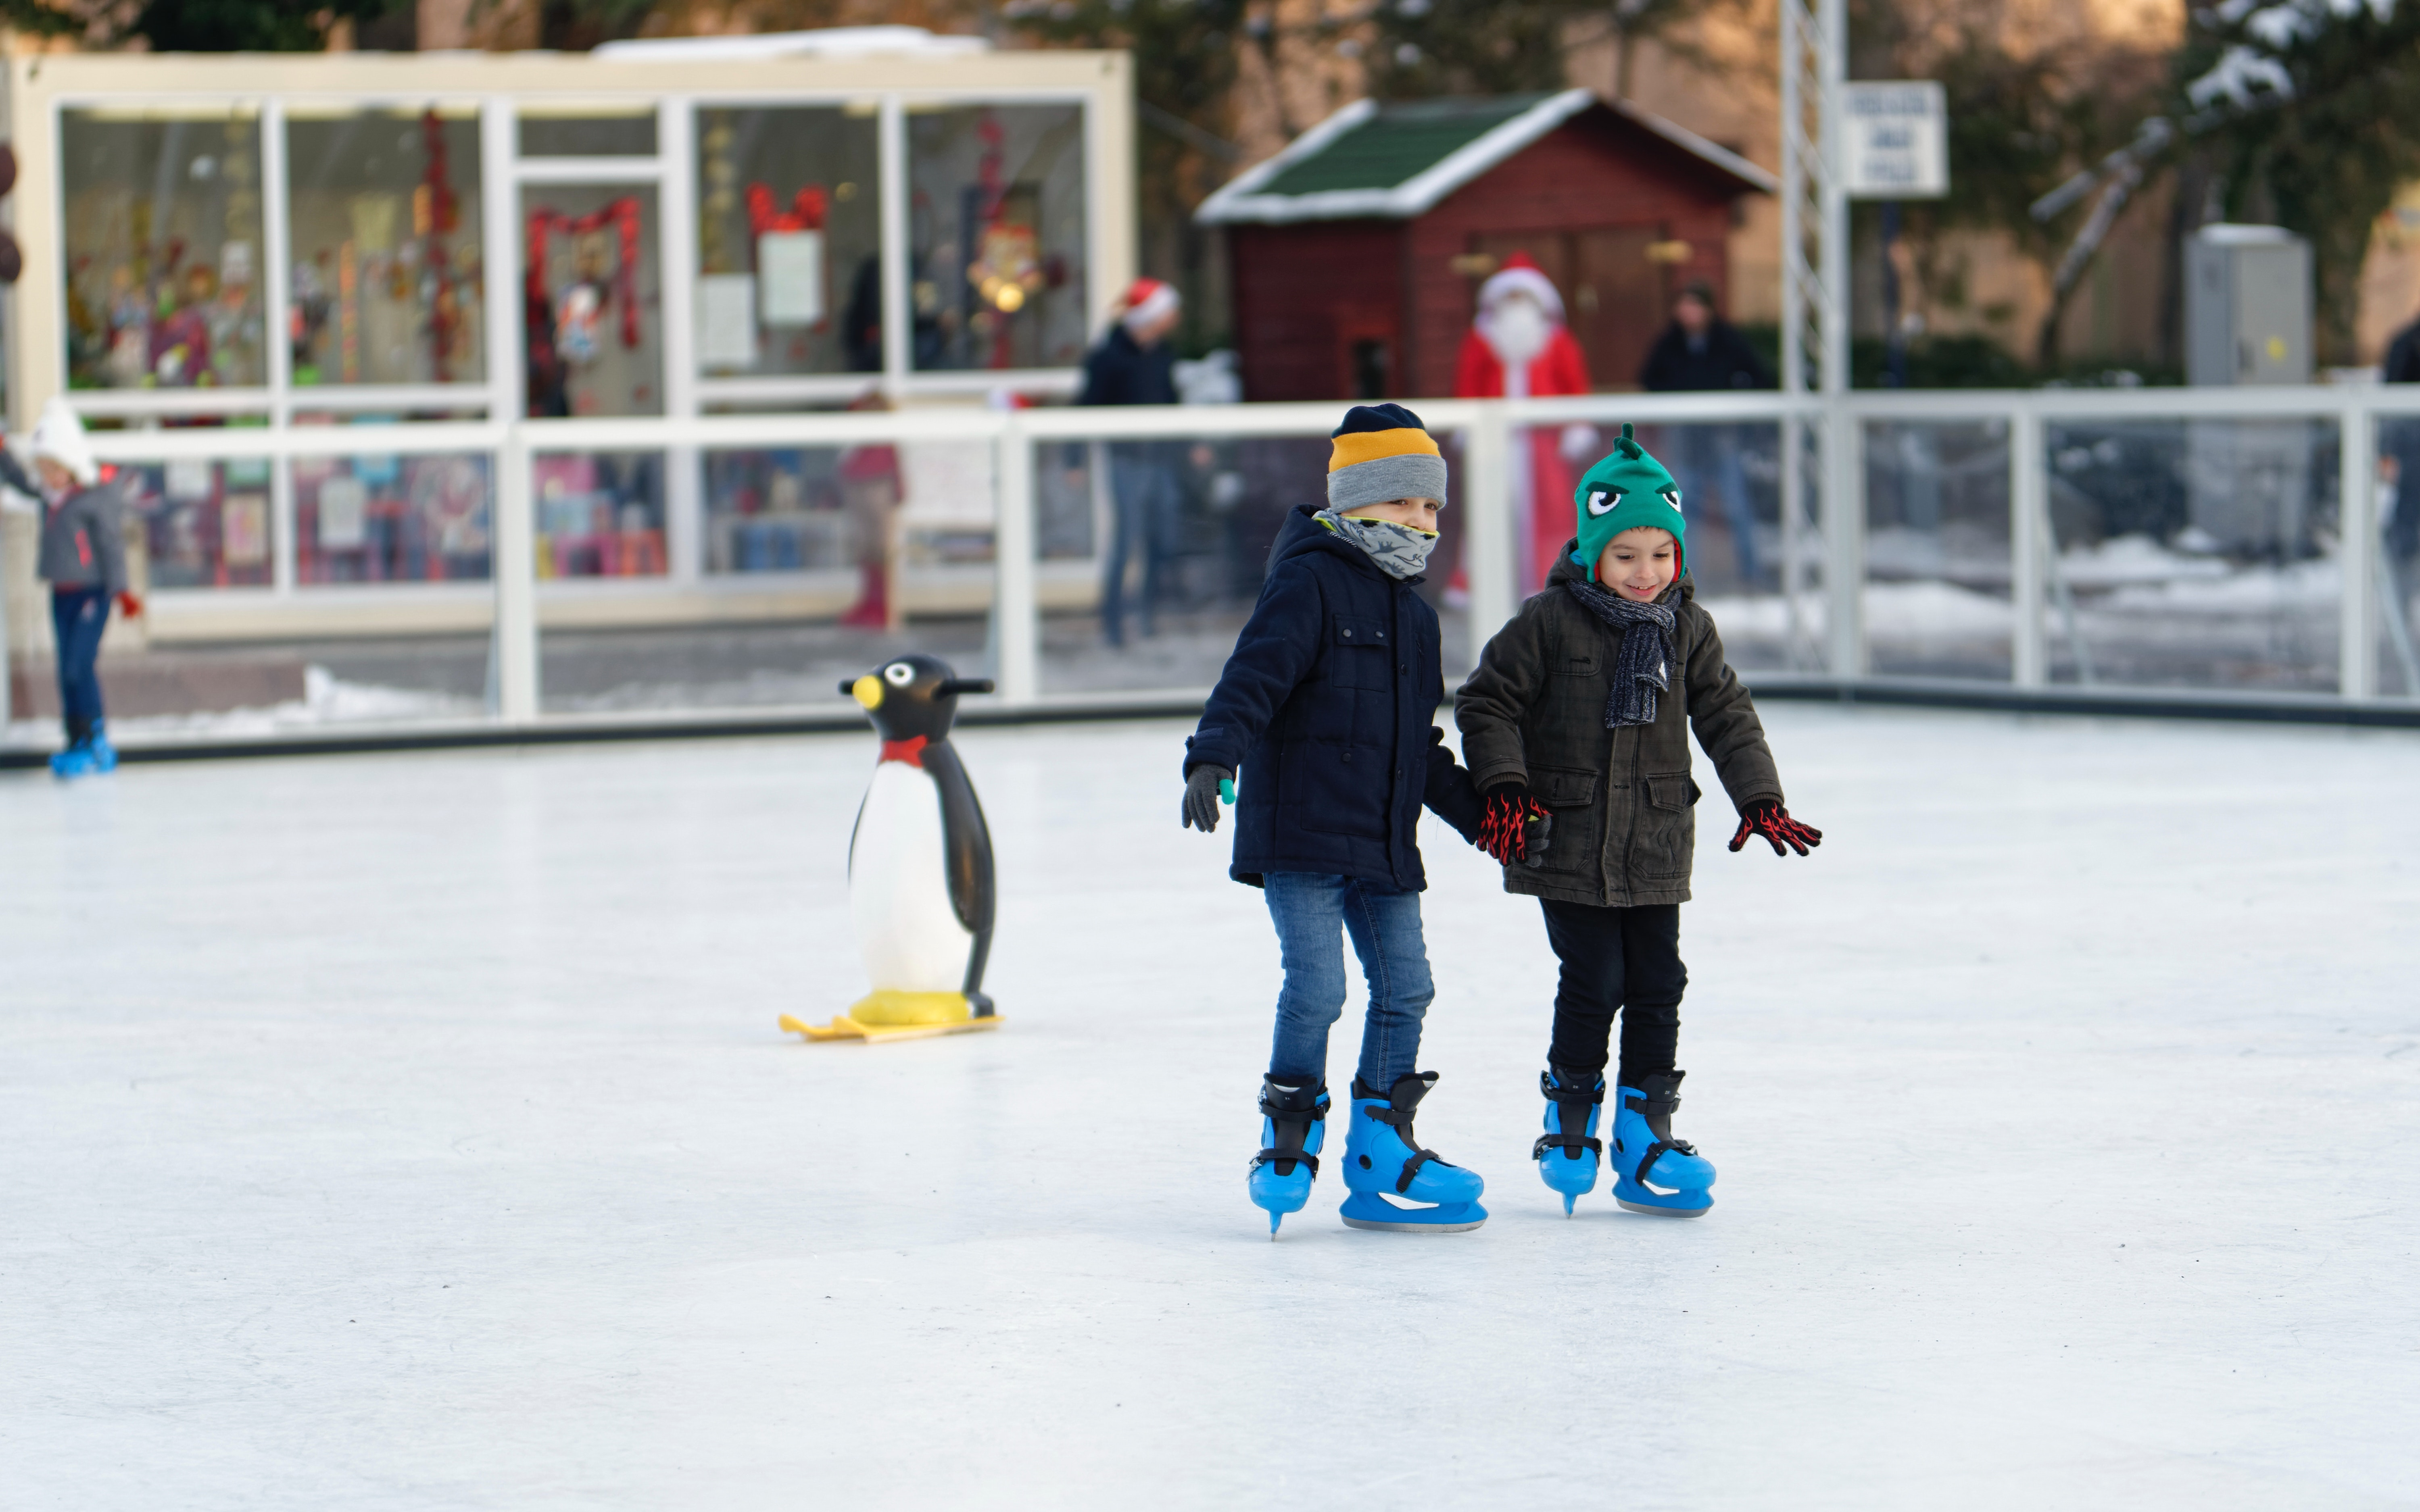 This winter, New York City offers plenty of fun events, free of charge.